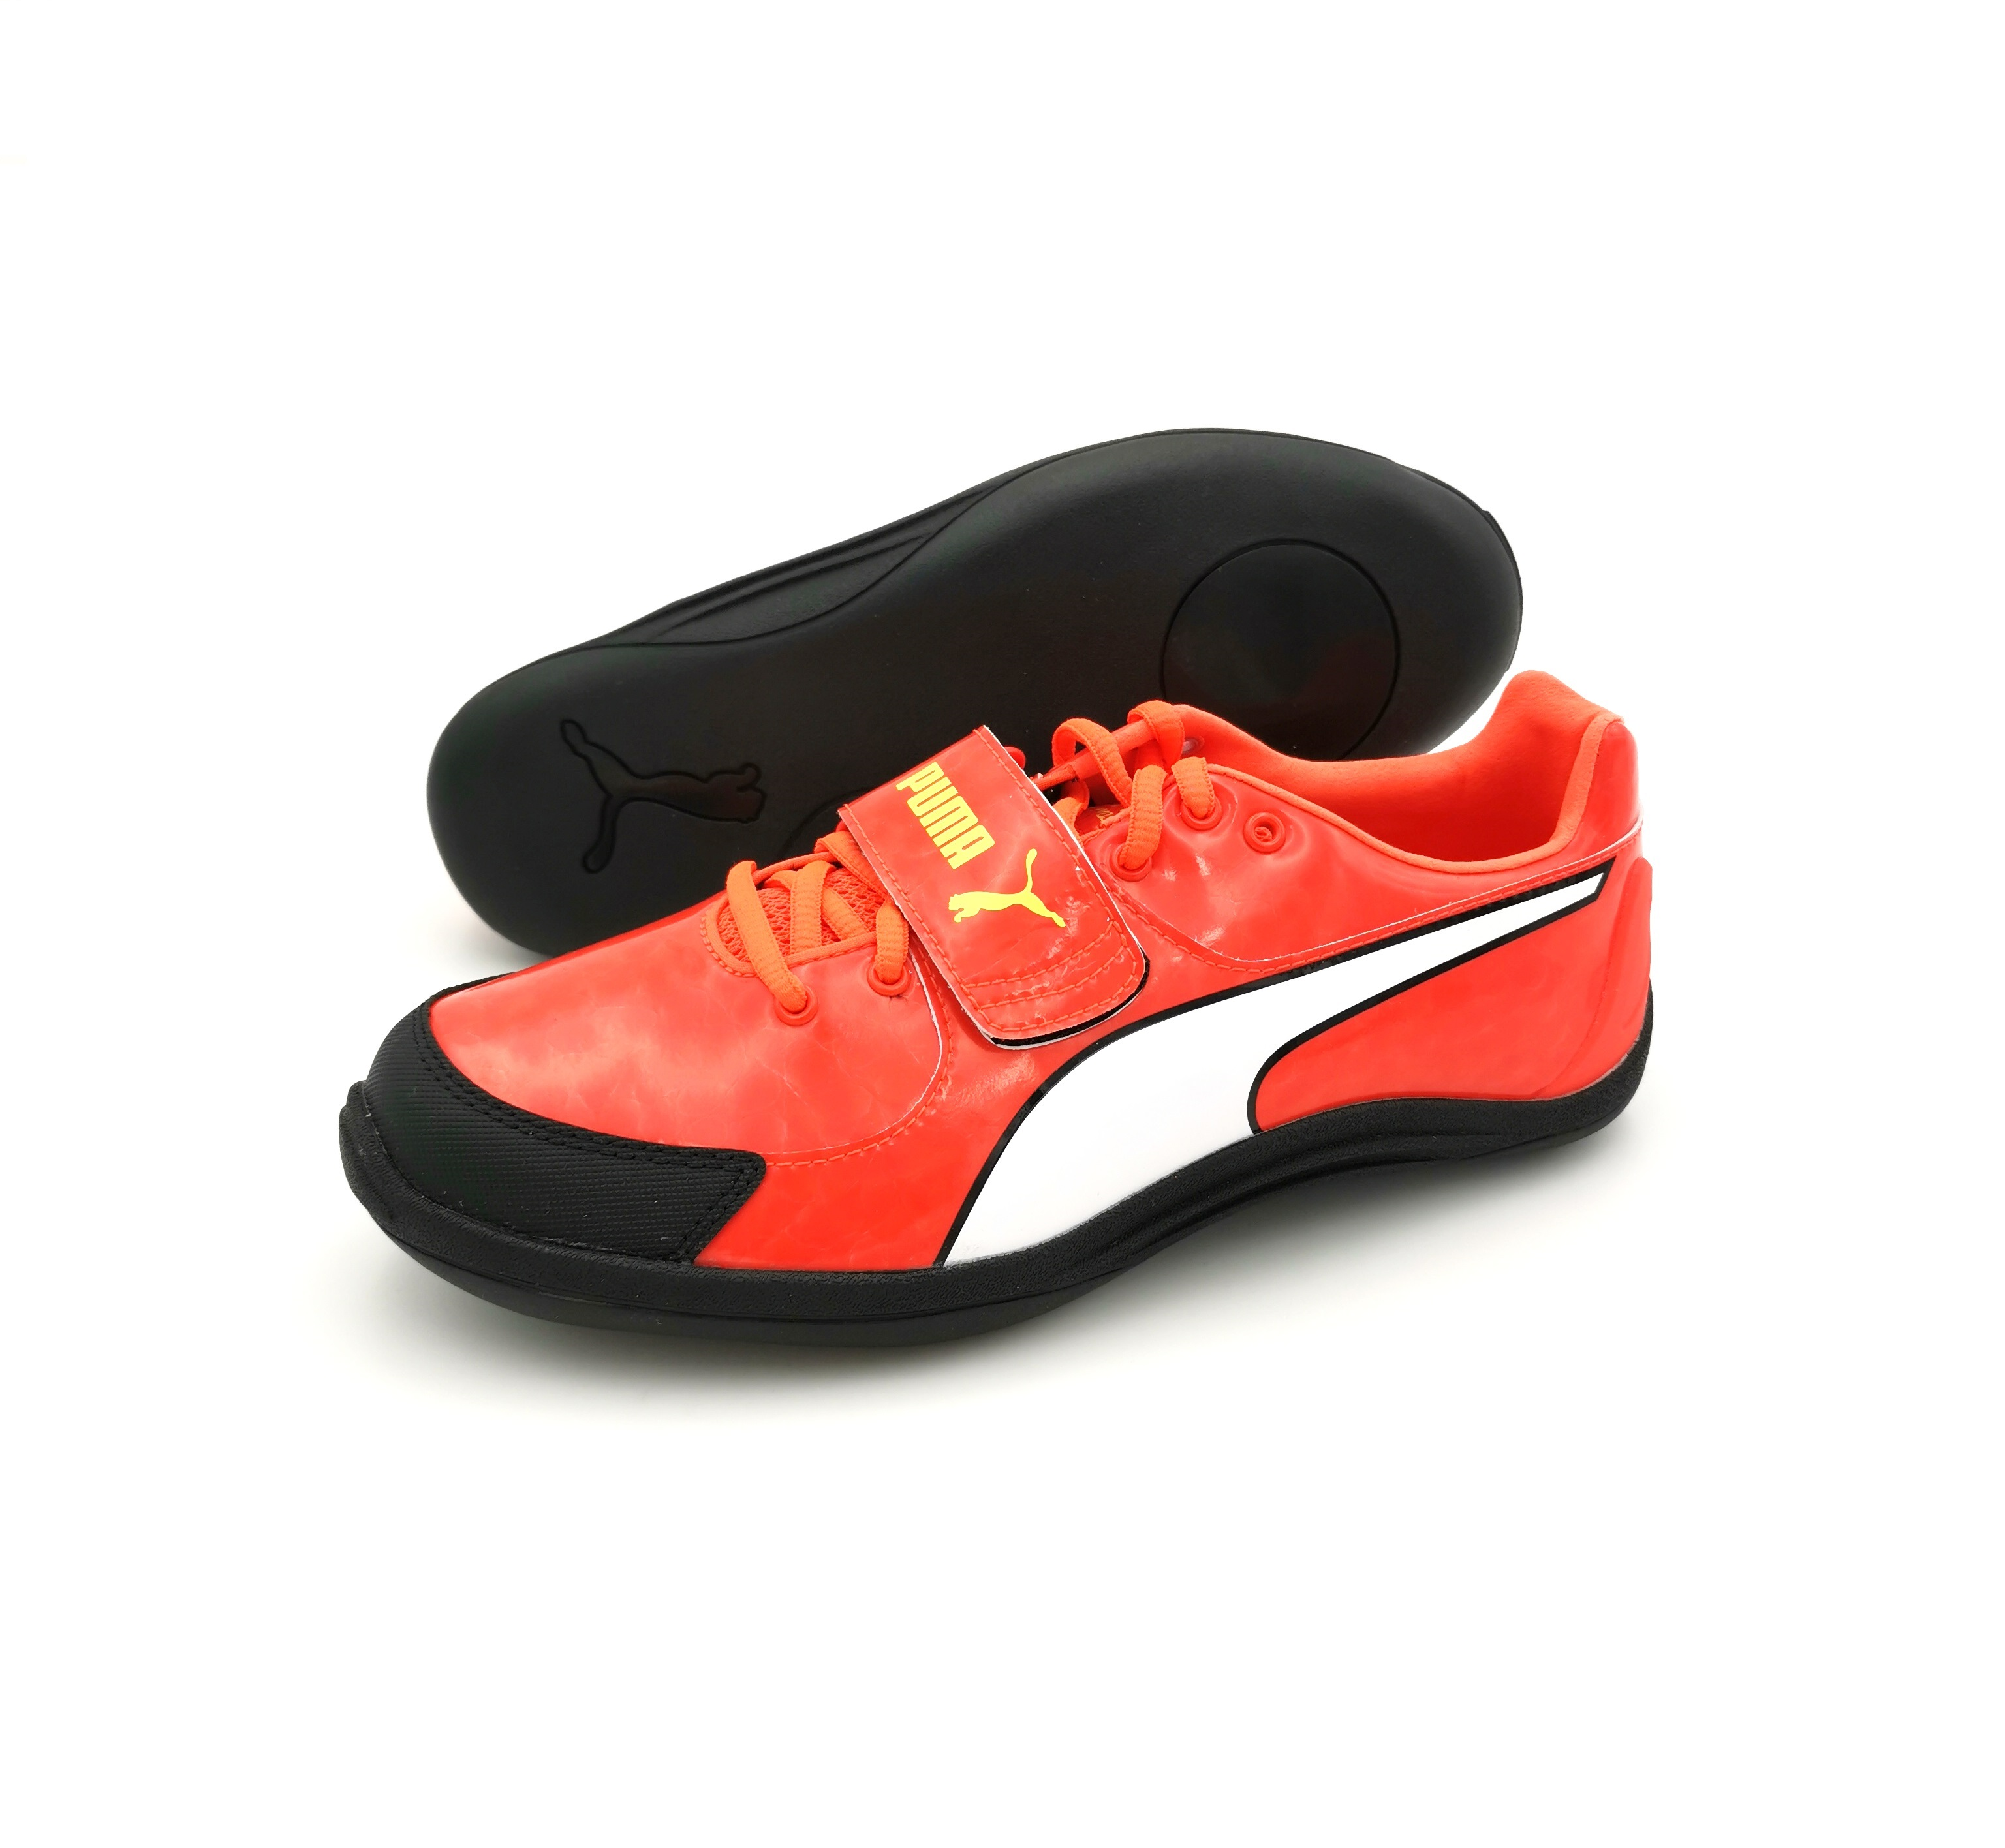 Puma evoSPEED Throw 4